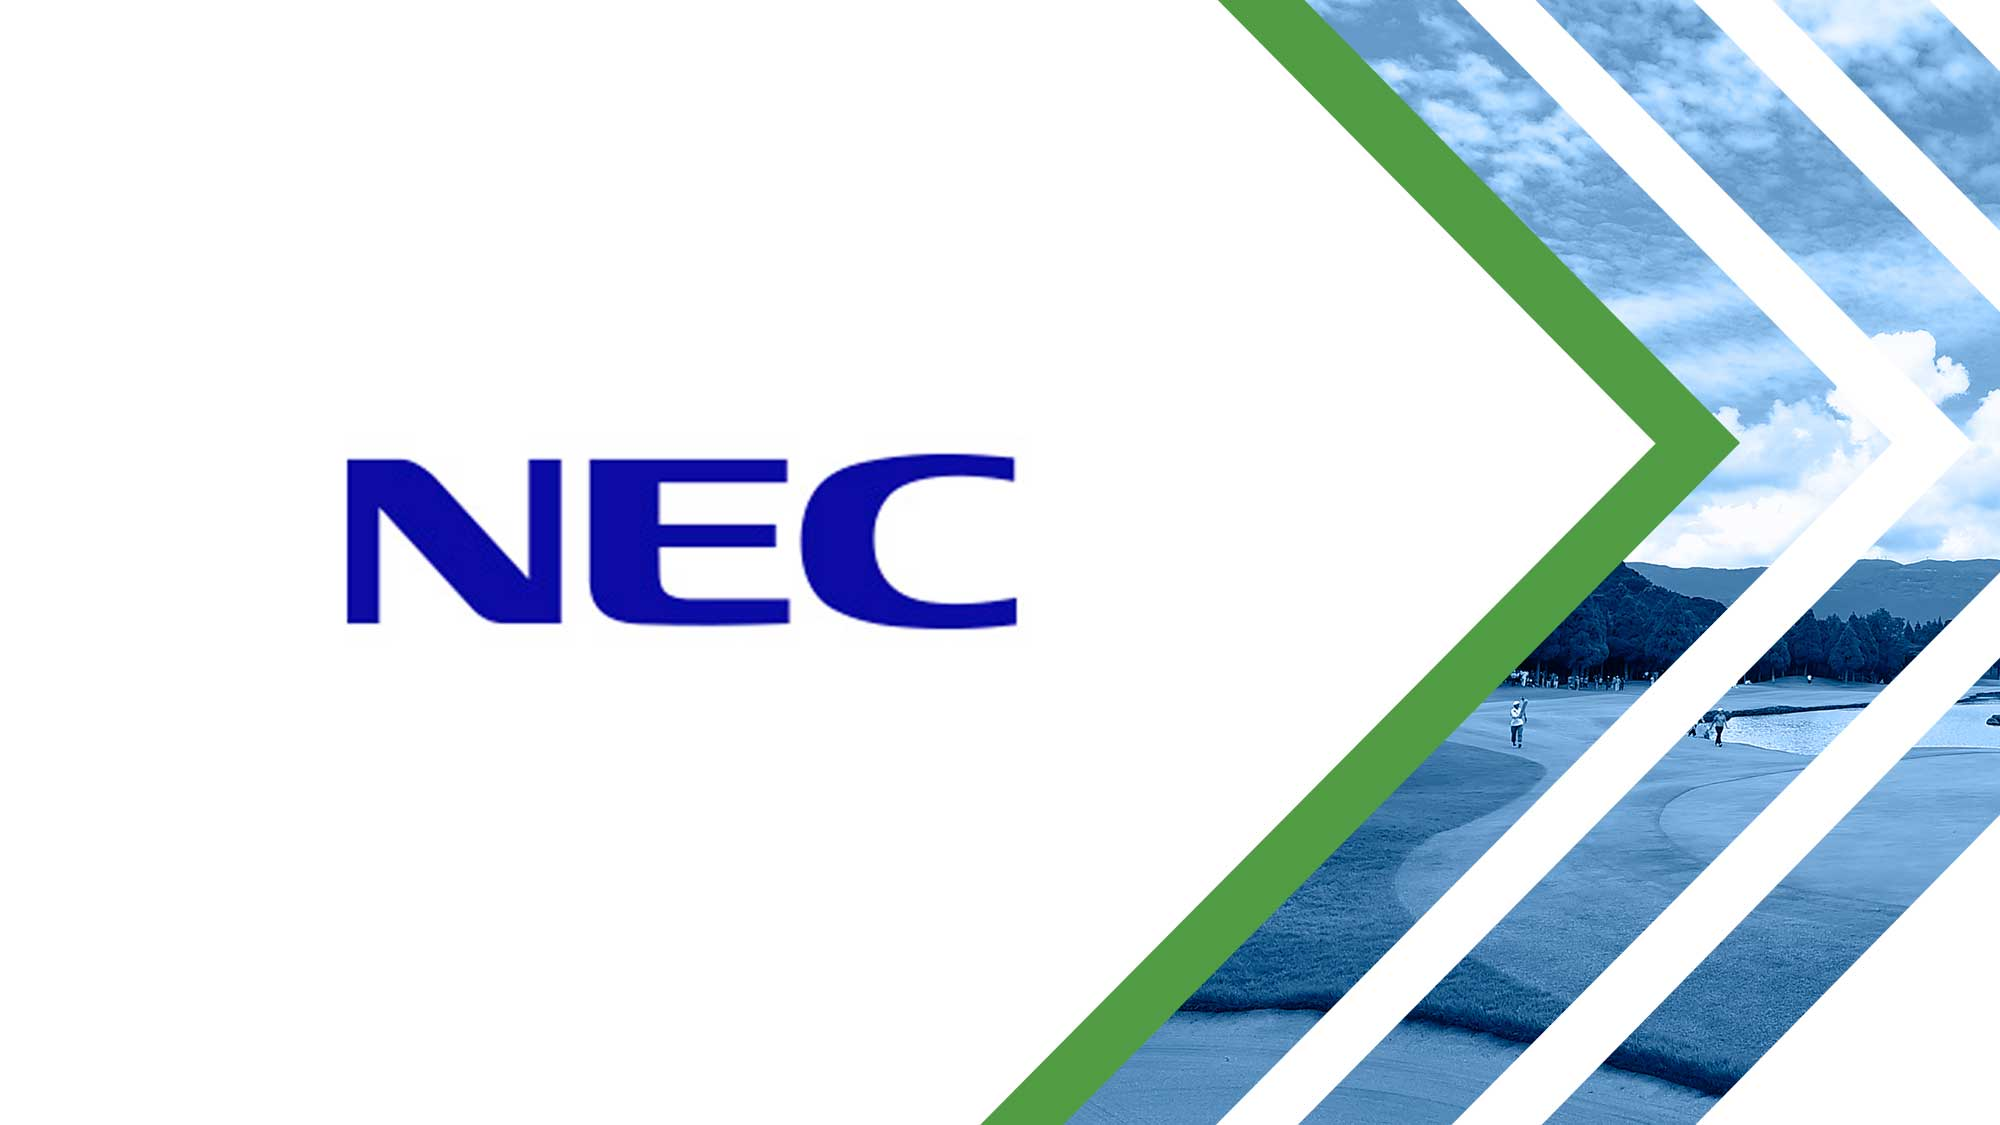 Nec Corporation To Join The Lpga Family As Official Technology Partner